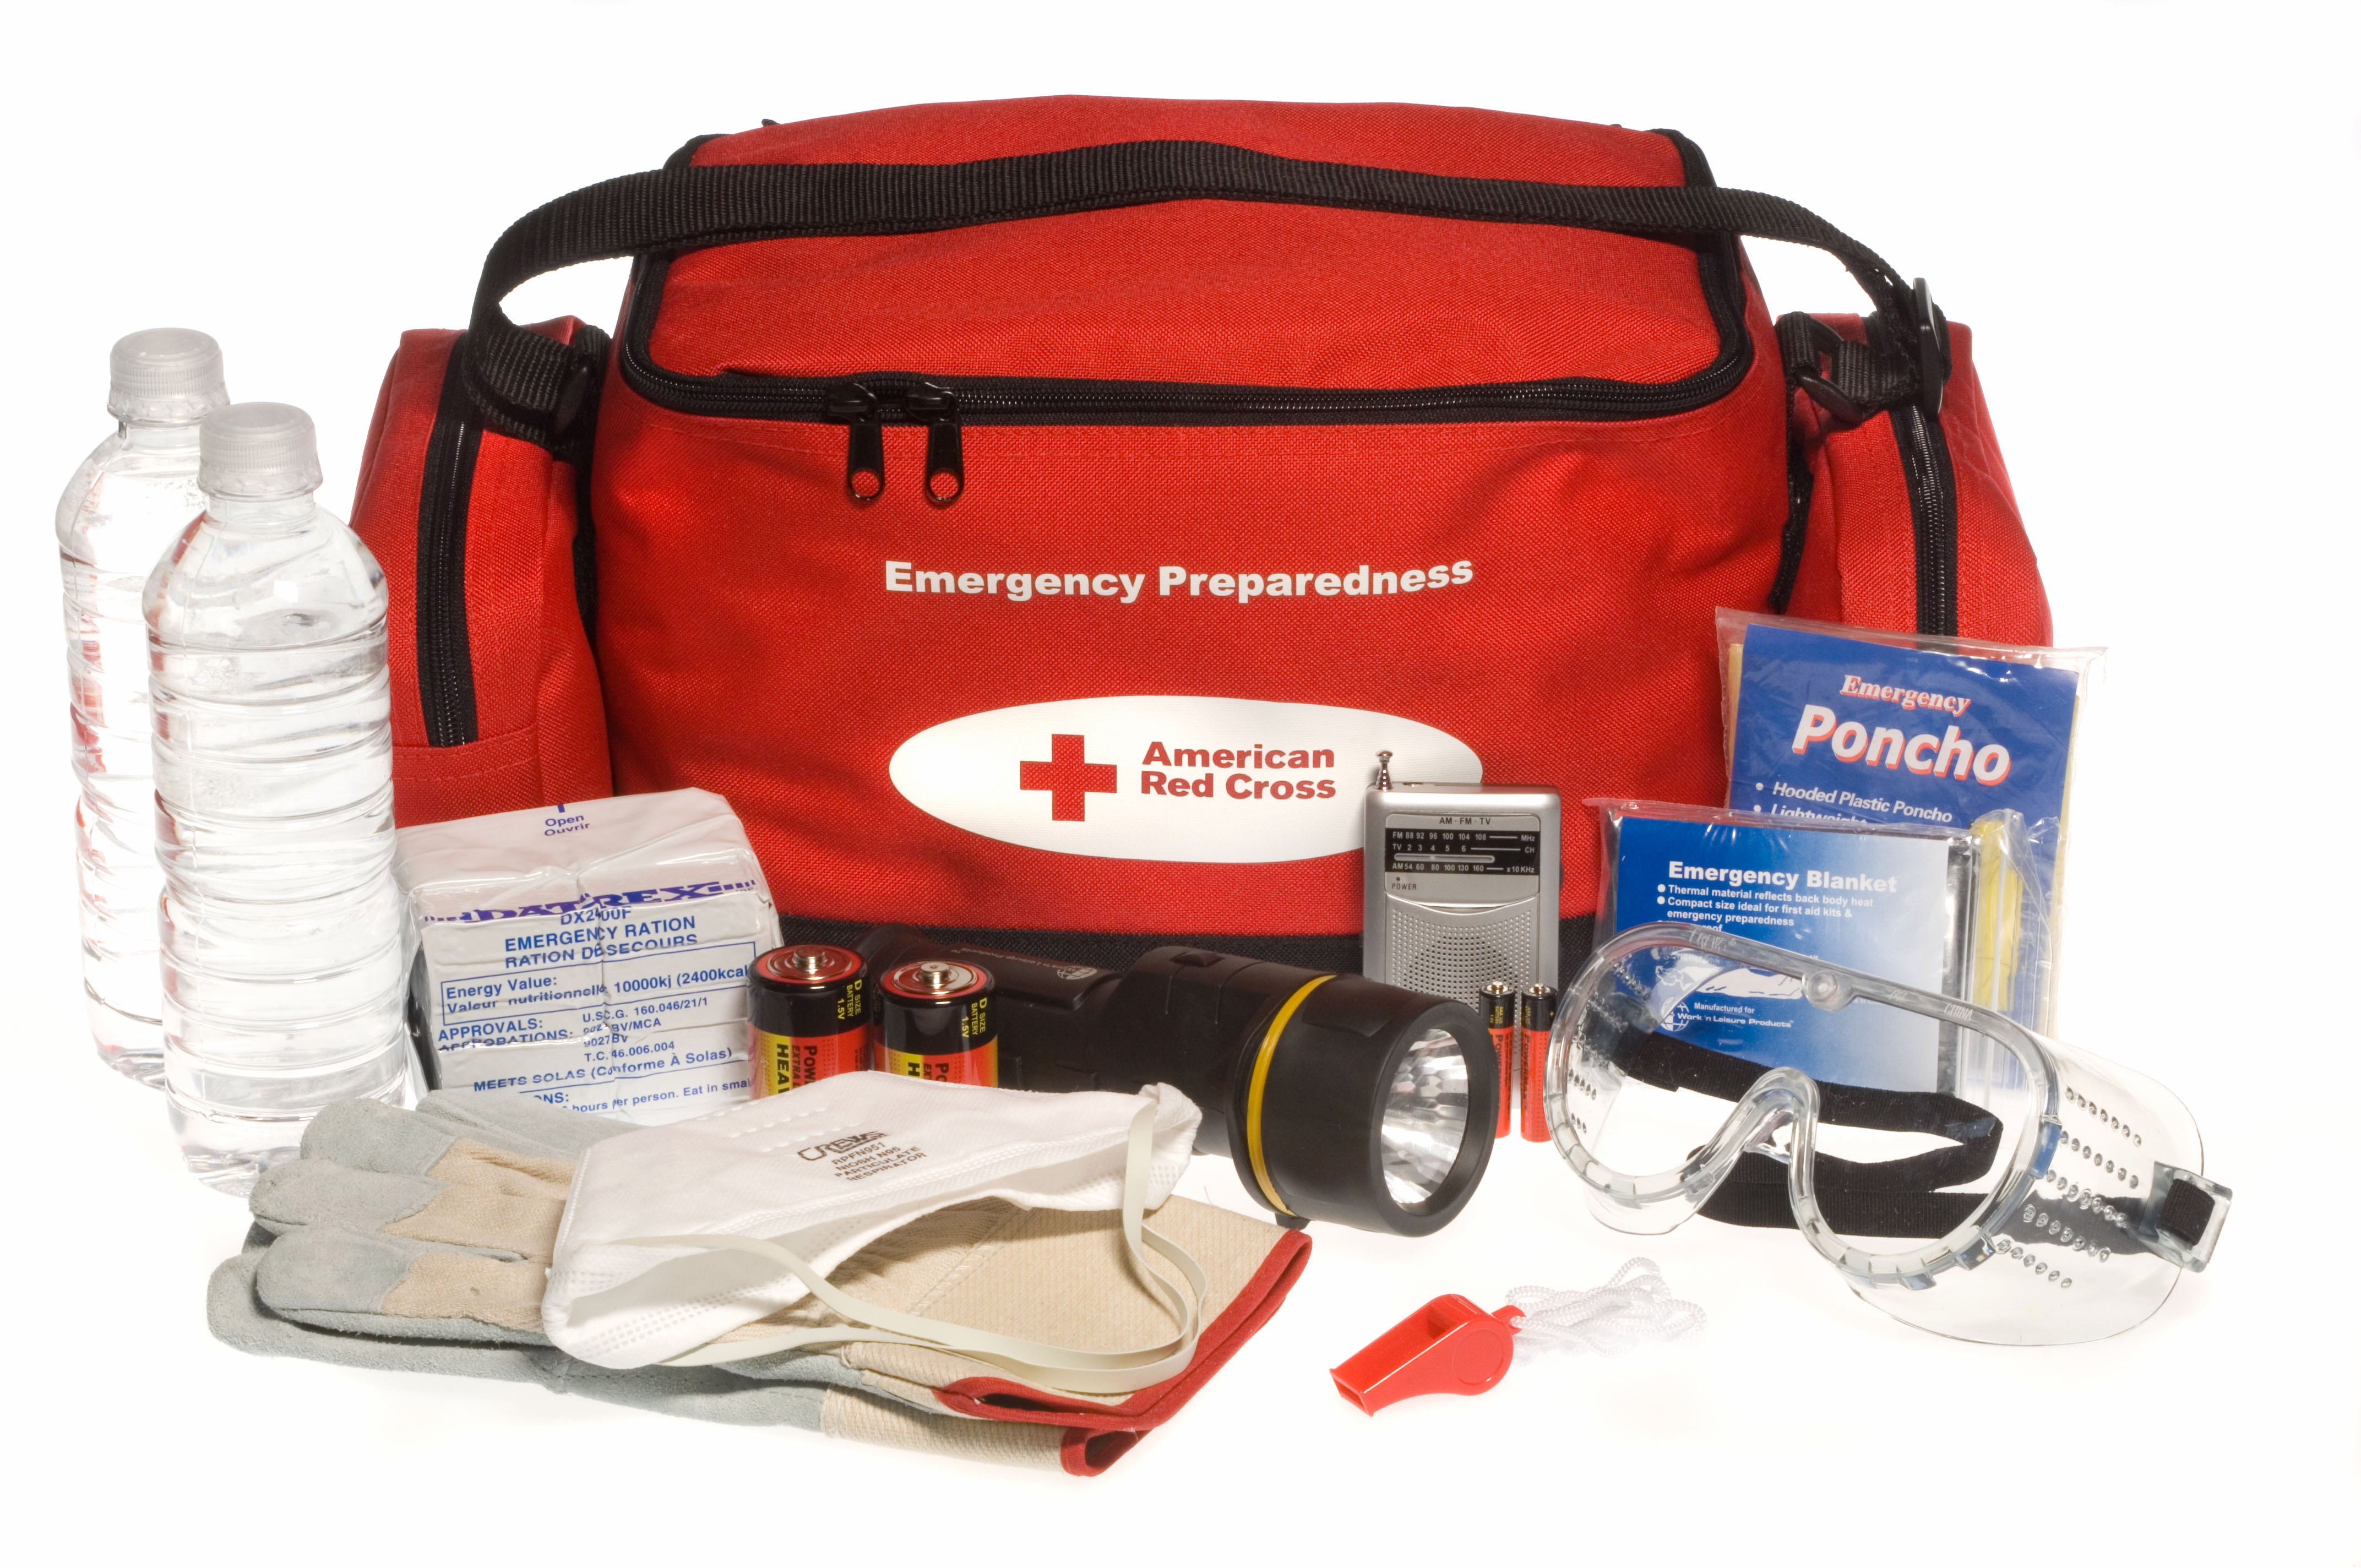 Emergency Preparedness Natural Disasters